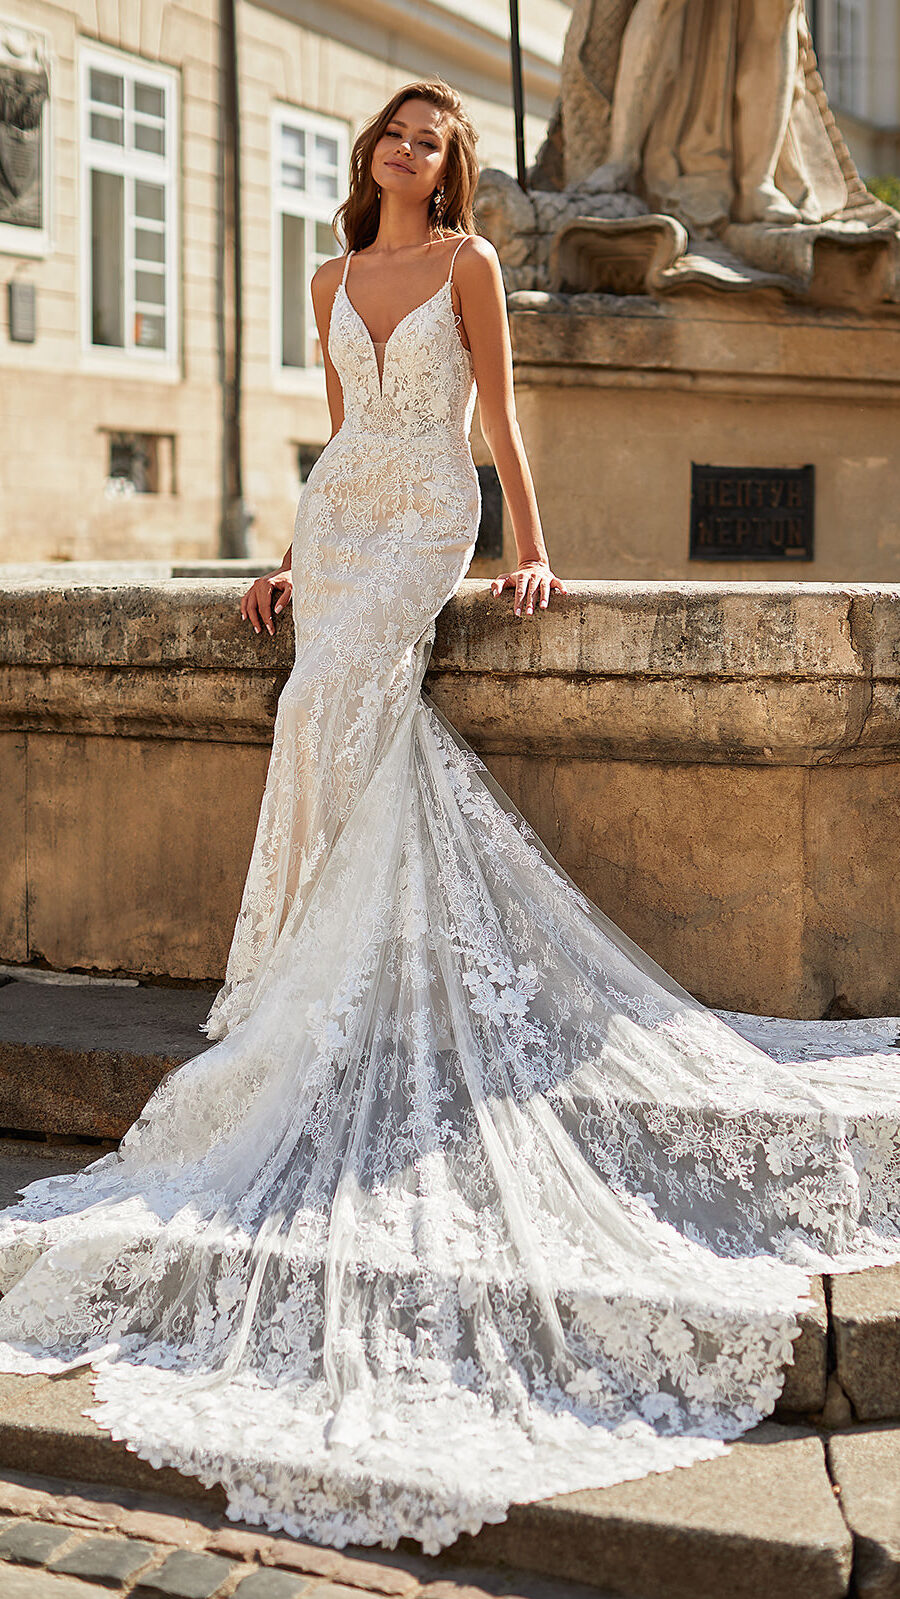 Designer Wedding Dresses by Moonlight Couture 2022 Bridal Collection - H1488